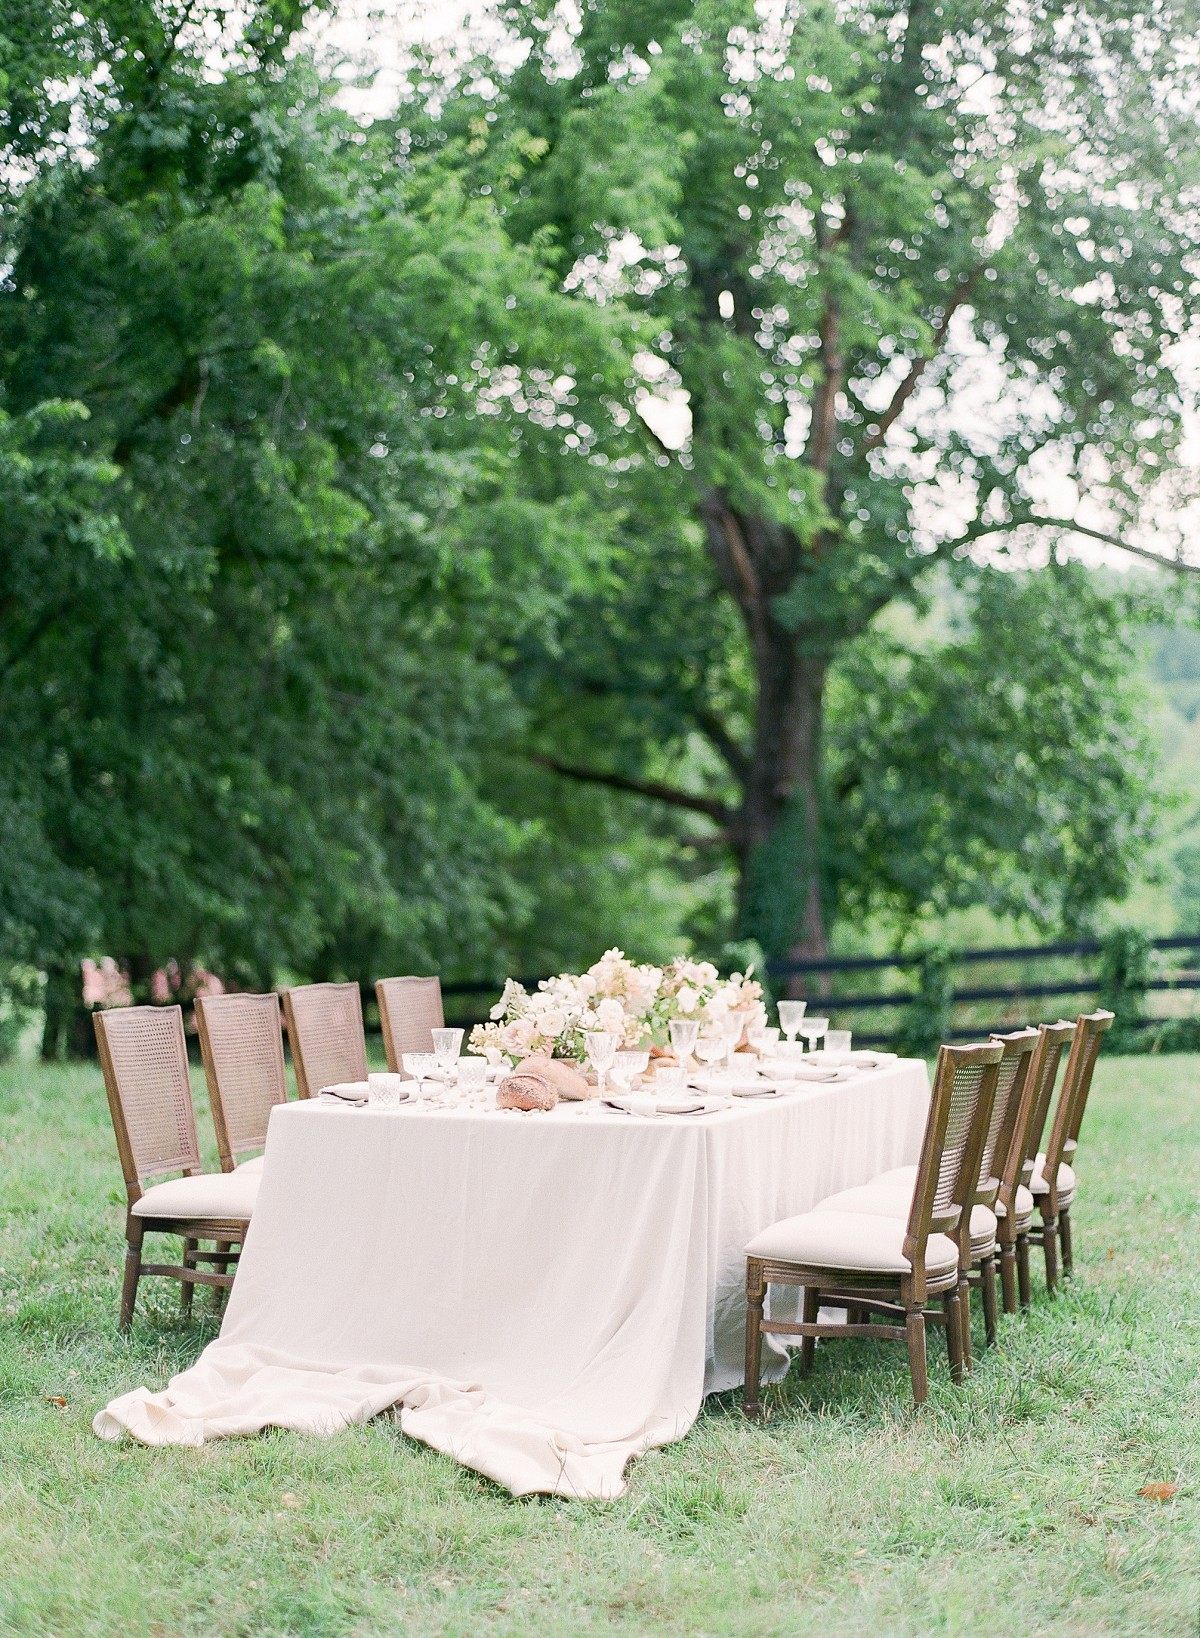 French Countryside Vibes at Bloomsbury Farm